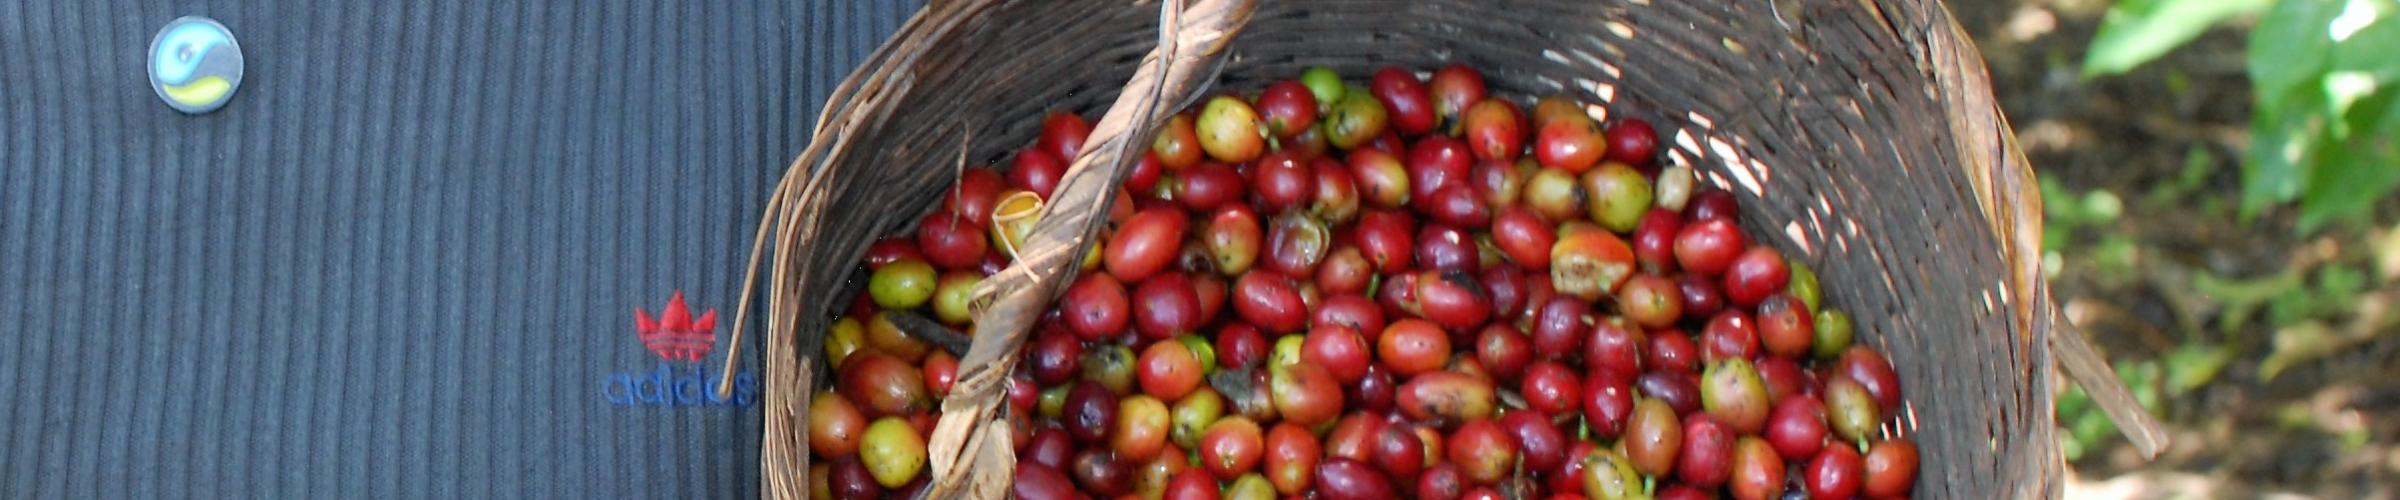 Why is Fairtrade necessary? Farming coffee without Fairtrade